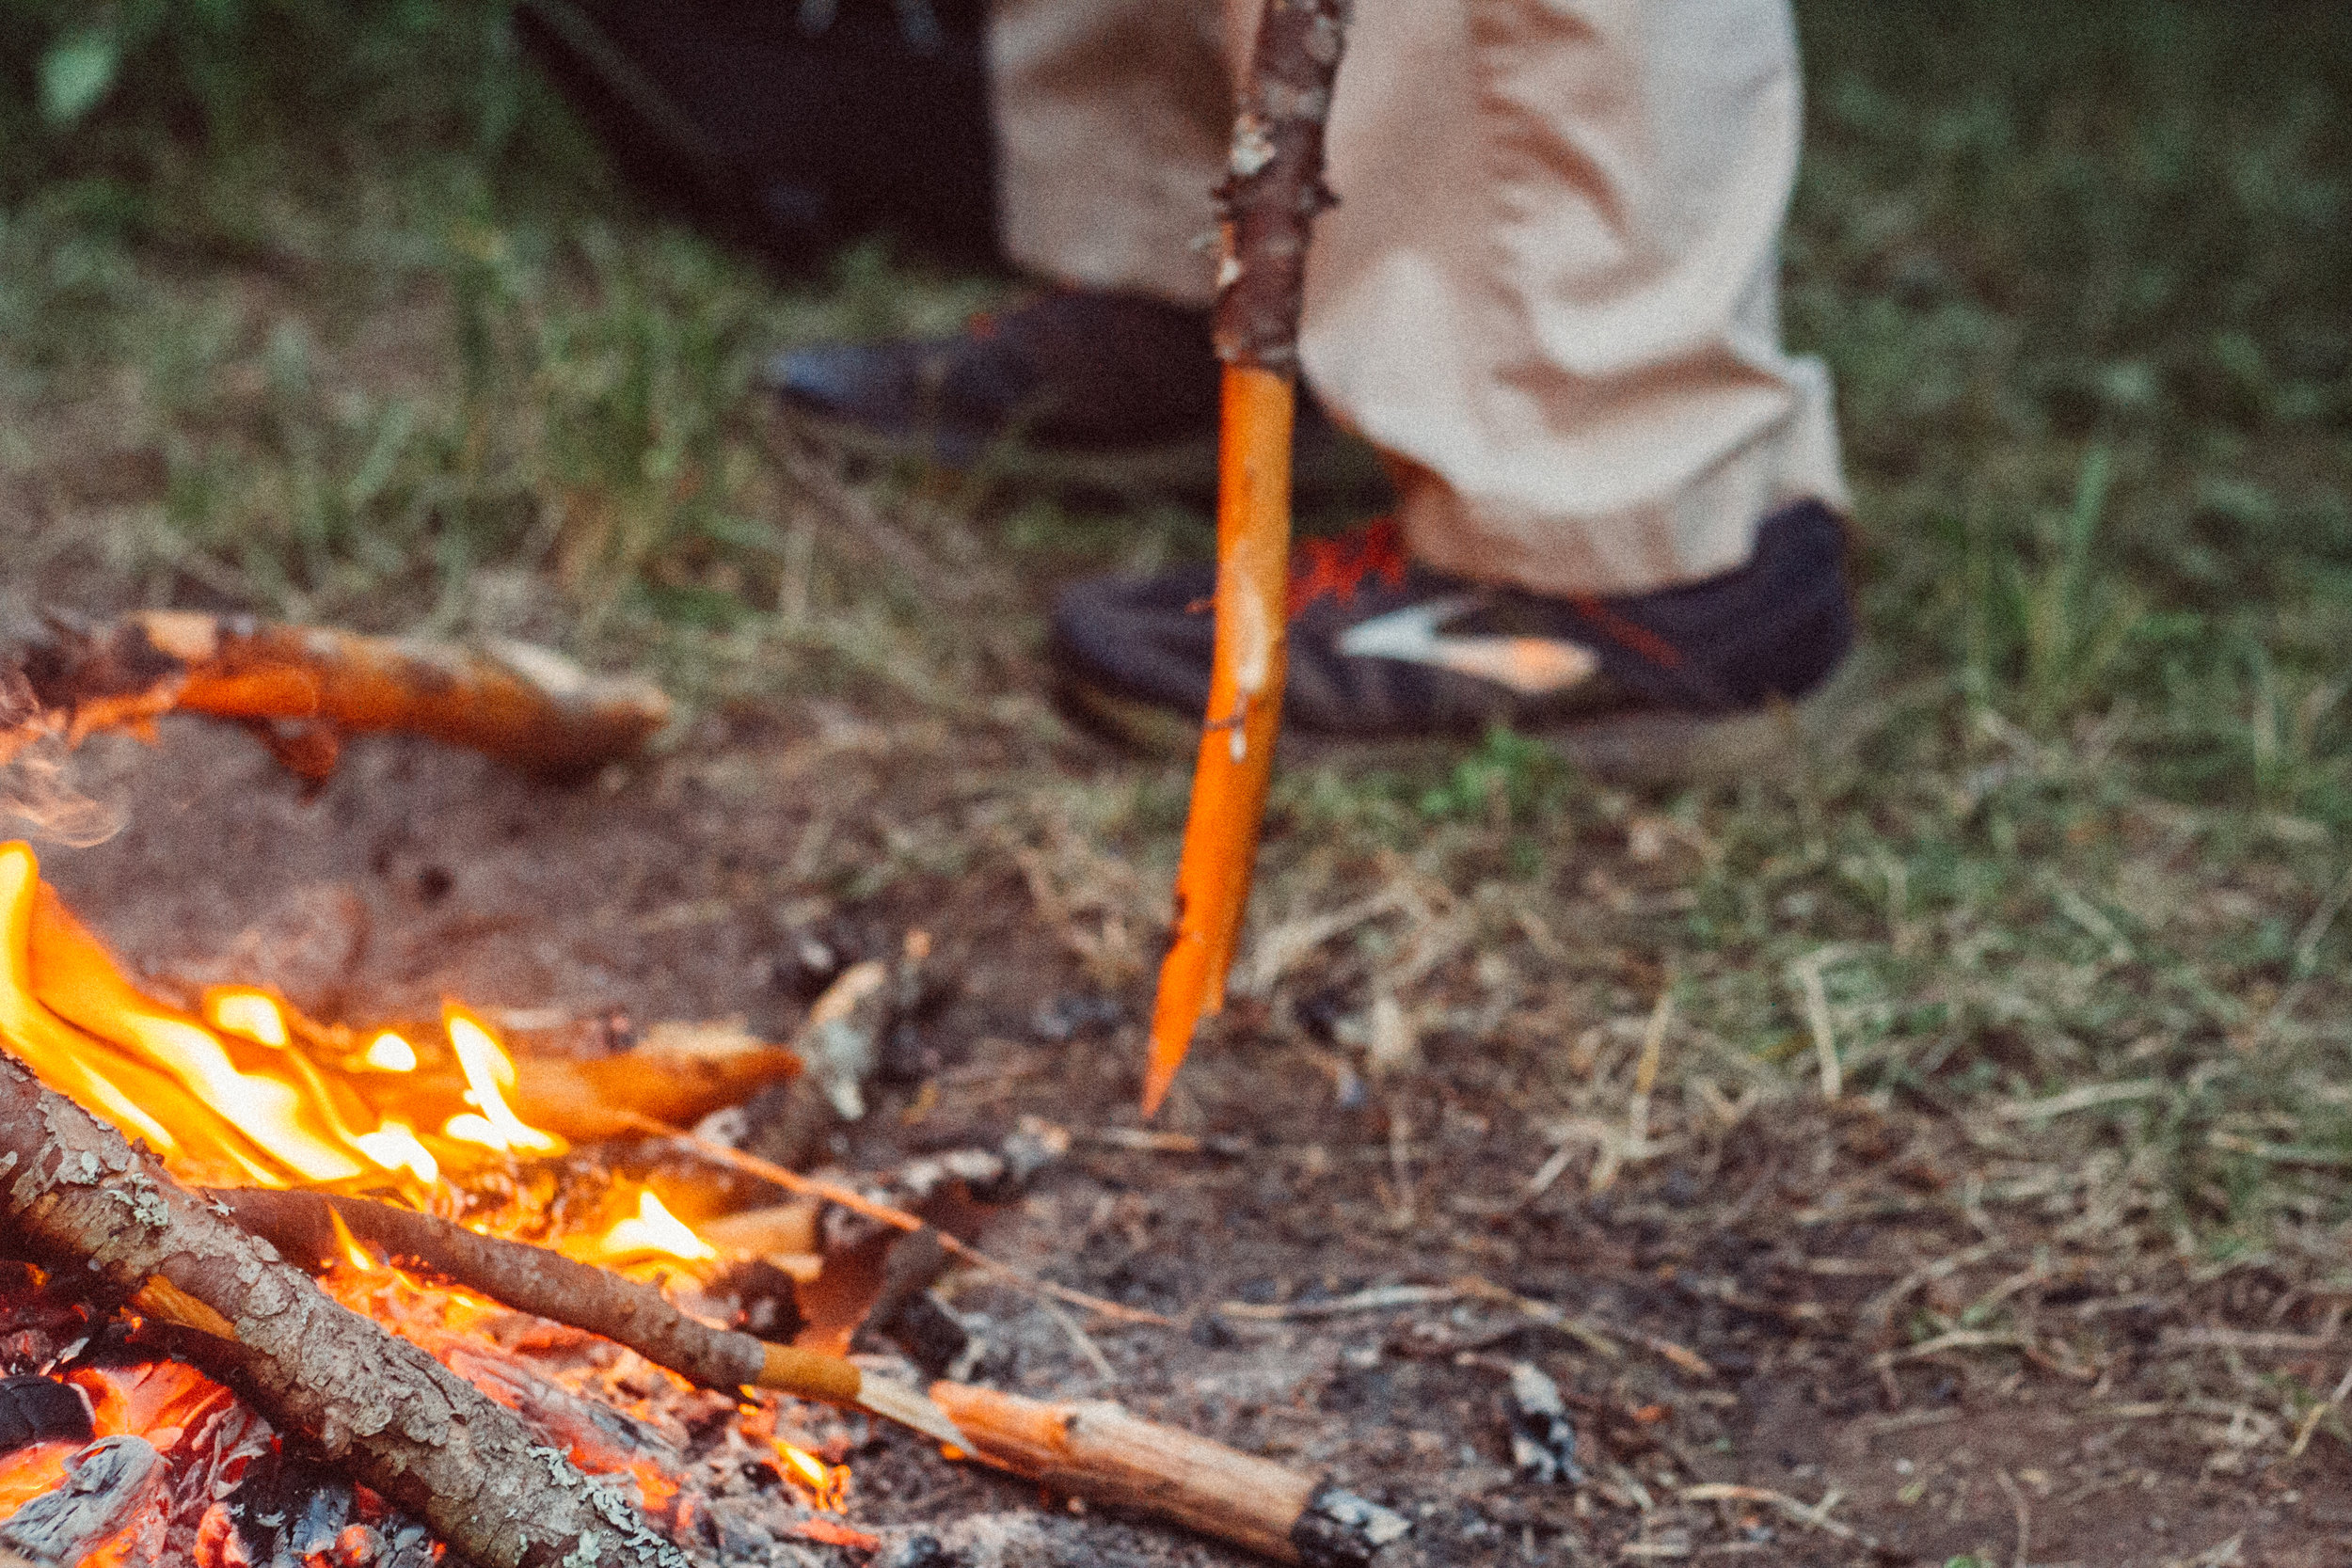 evening fires were spent telling stories while boiling bark for our bark-tan liqueur, and smoking hides.